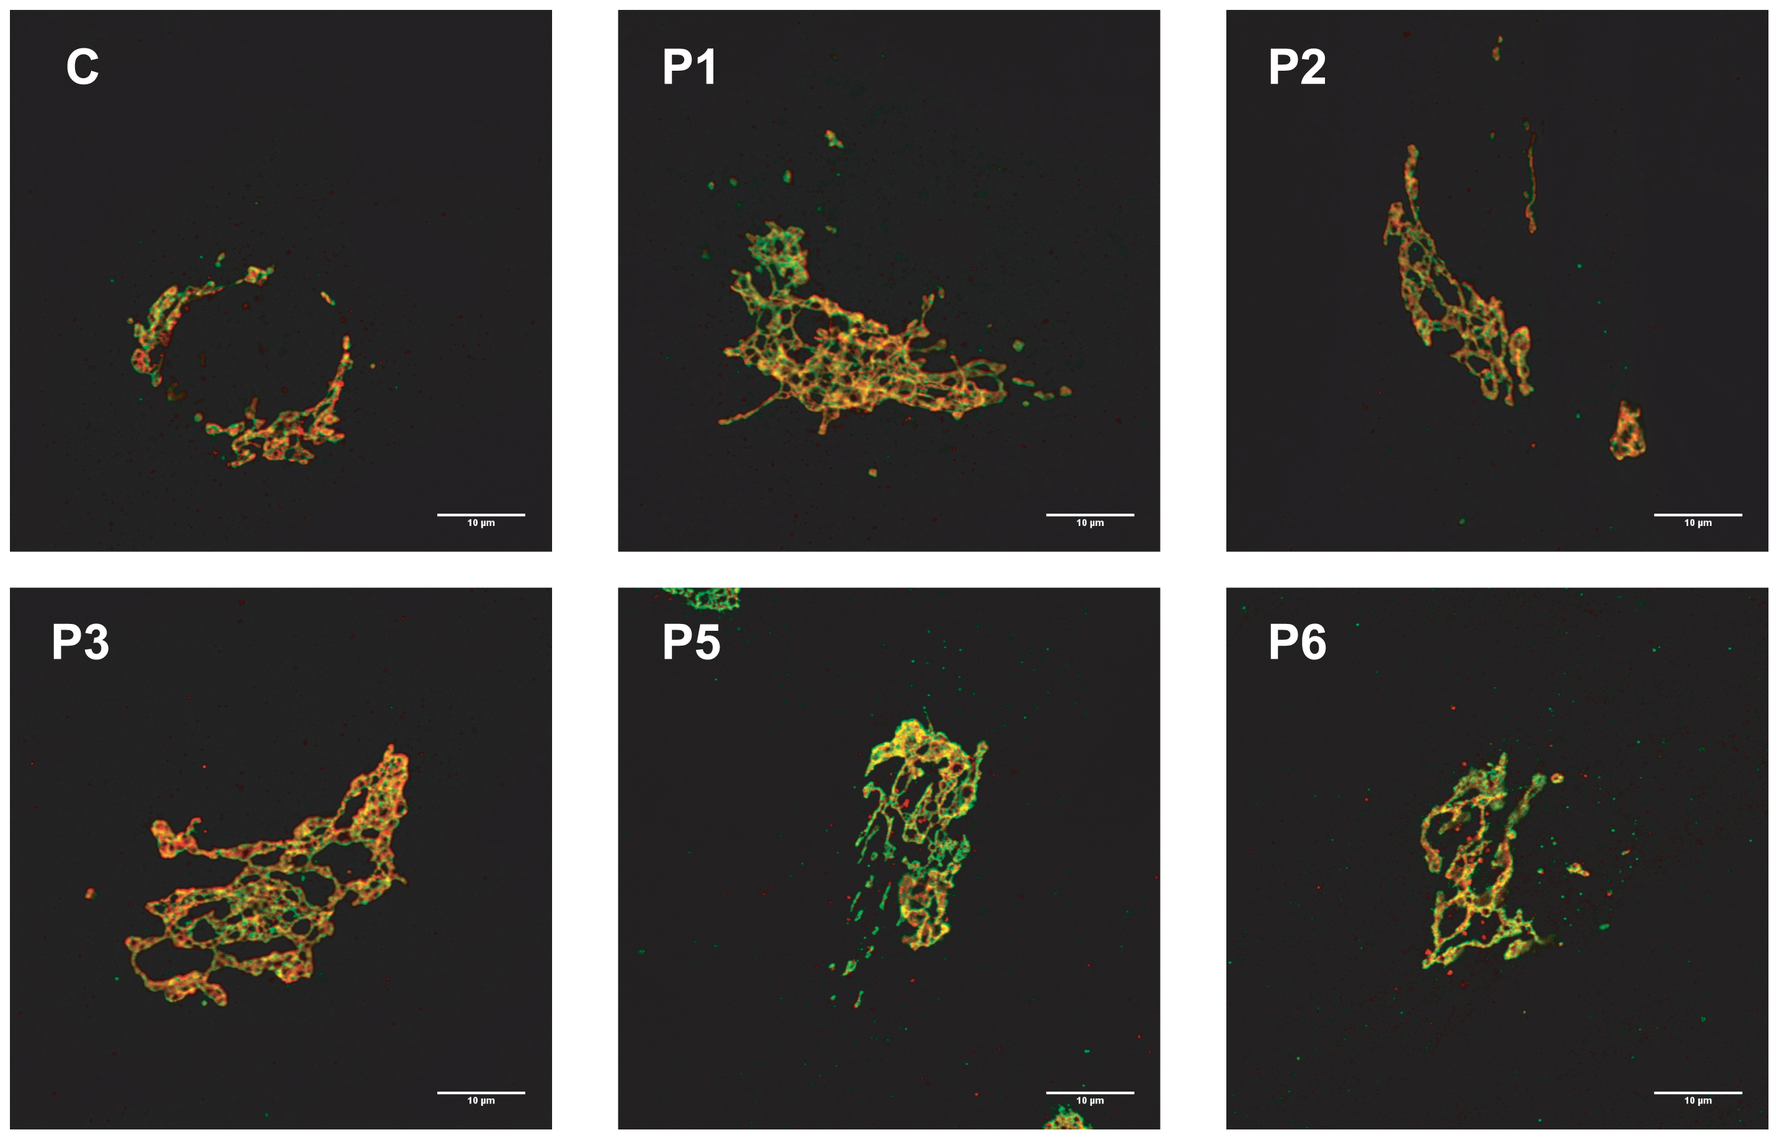 MAN1B1-deficient fibroblasts present alterations in Golgi structure.